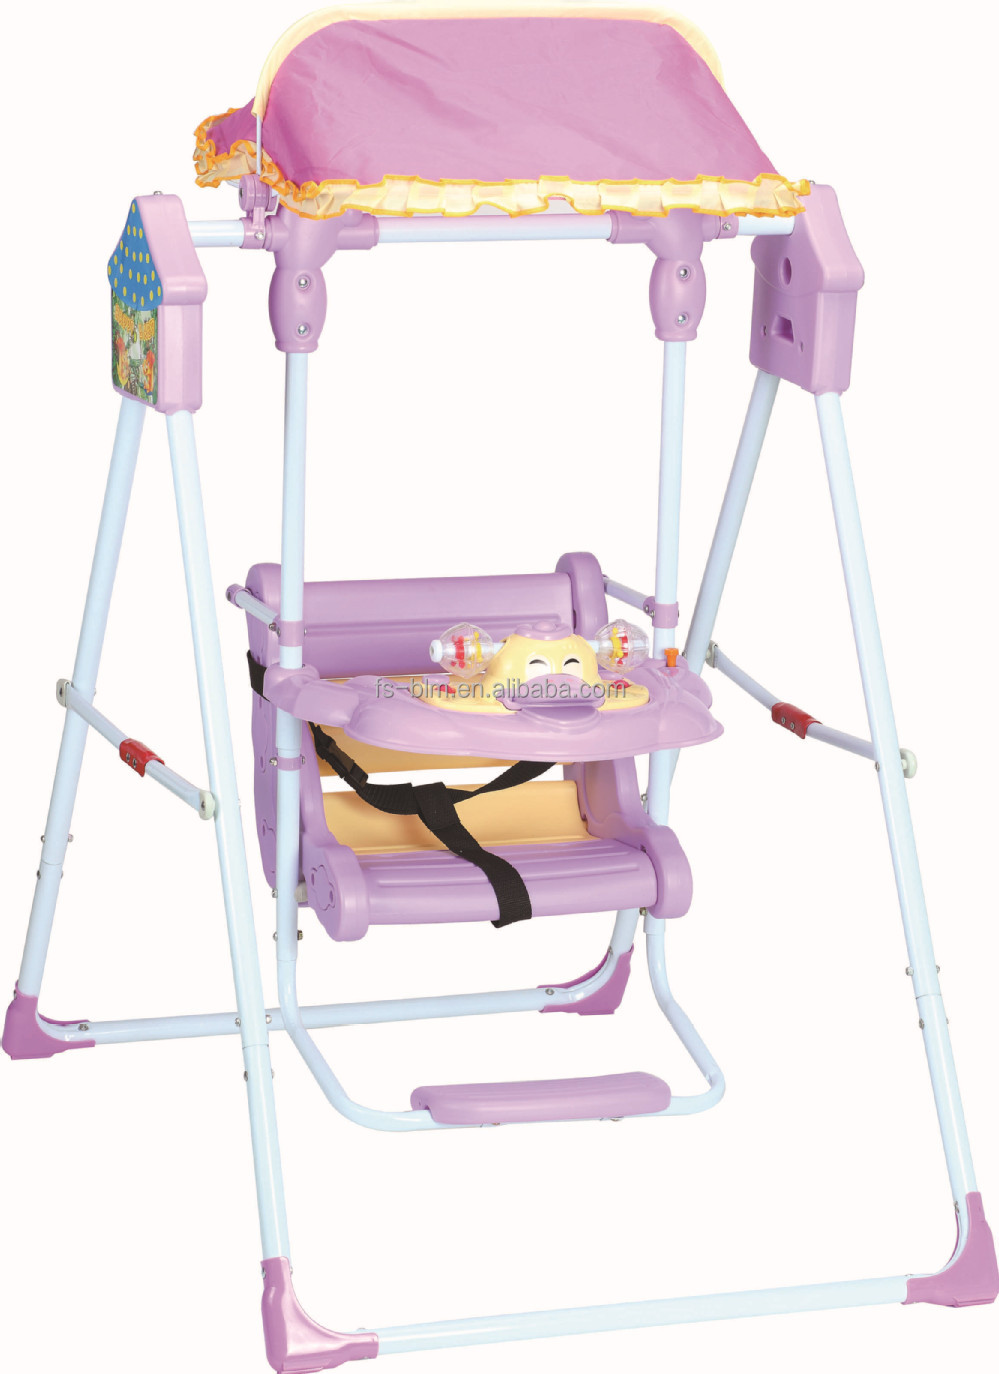 hight resolution of new hot sale out door baby swing with harness 106